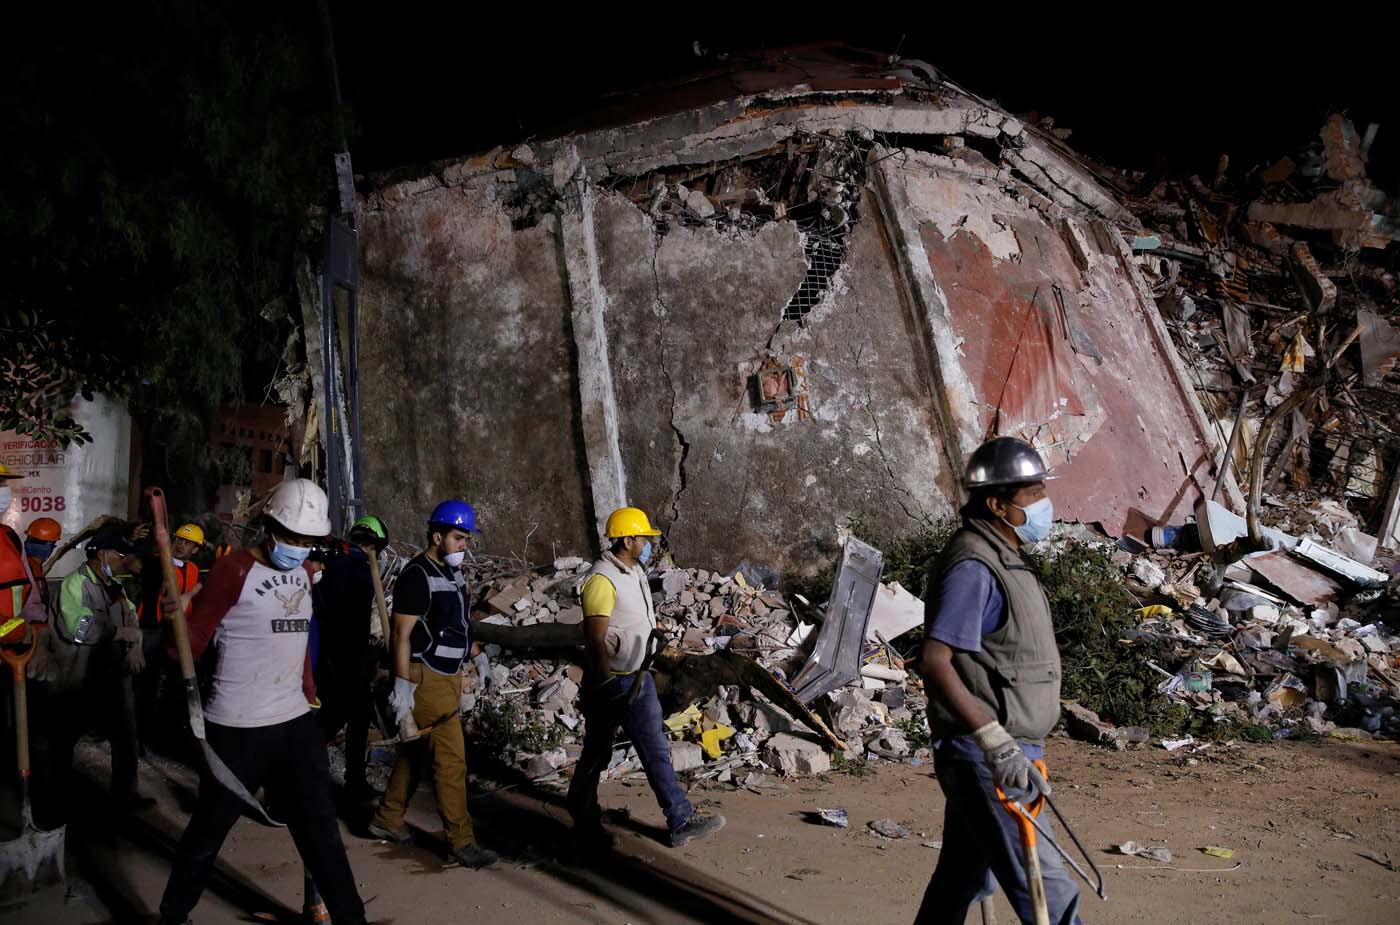 REFILE - REMOVING TYPO - Workers walk past a collapsed building after an earthquake in Mexico City, Mexico September 20, 2017. REUTERS/Henry Romero